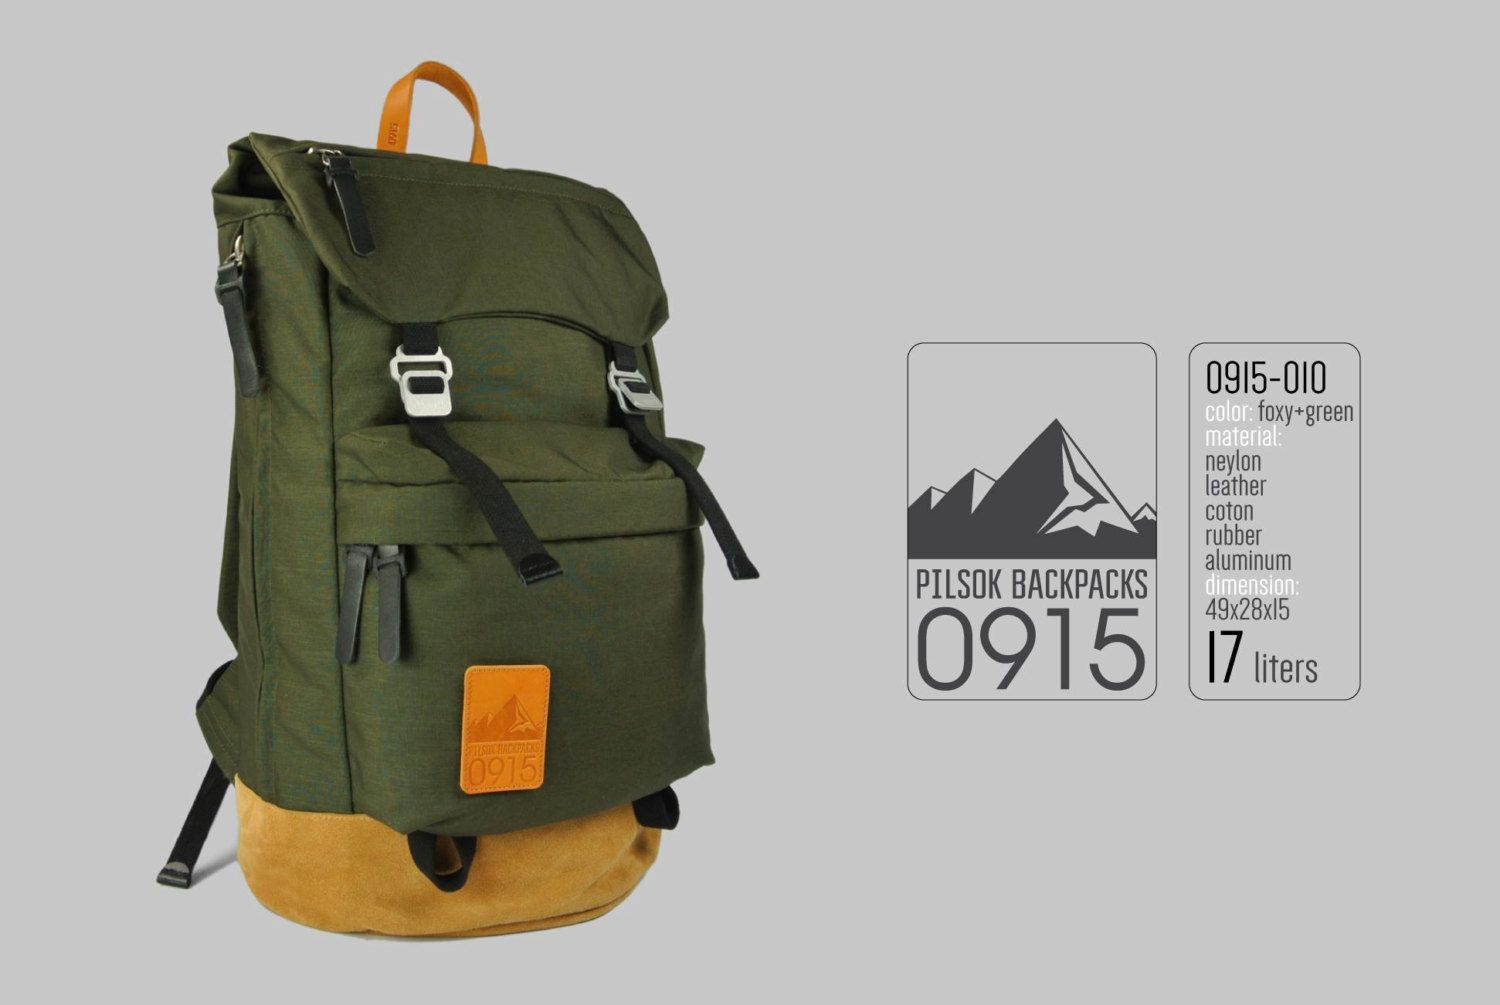 Backpack Pilsok 0915-010 FoxyGreen / Backpack of Cordura and Suede / Backpack with Suede Brown Bottom (105.00 USD) by Pilsok